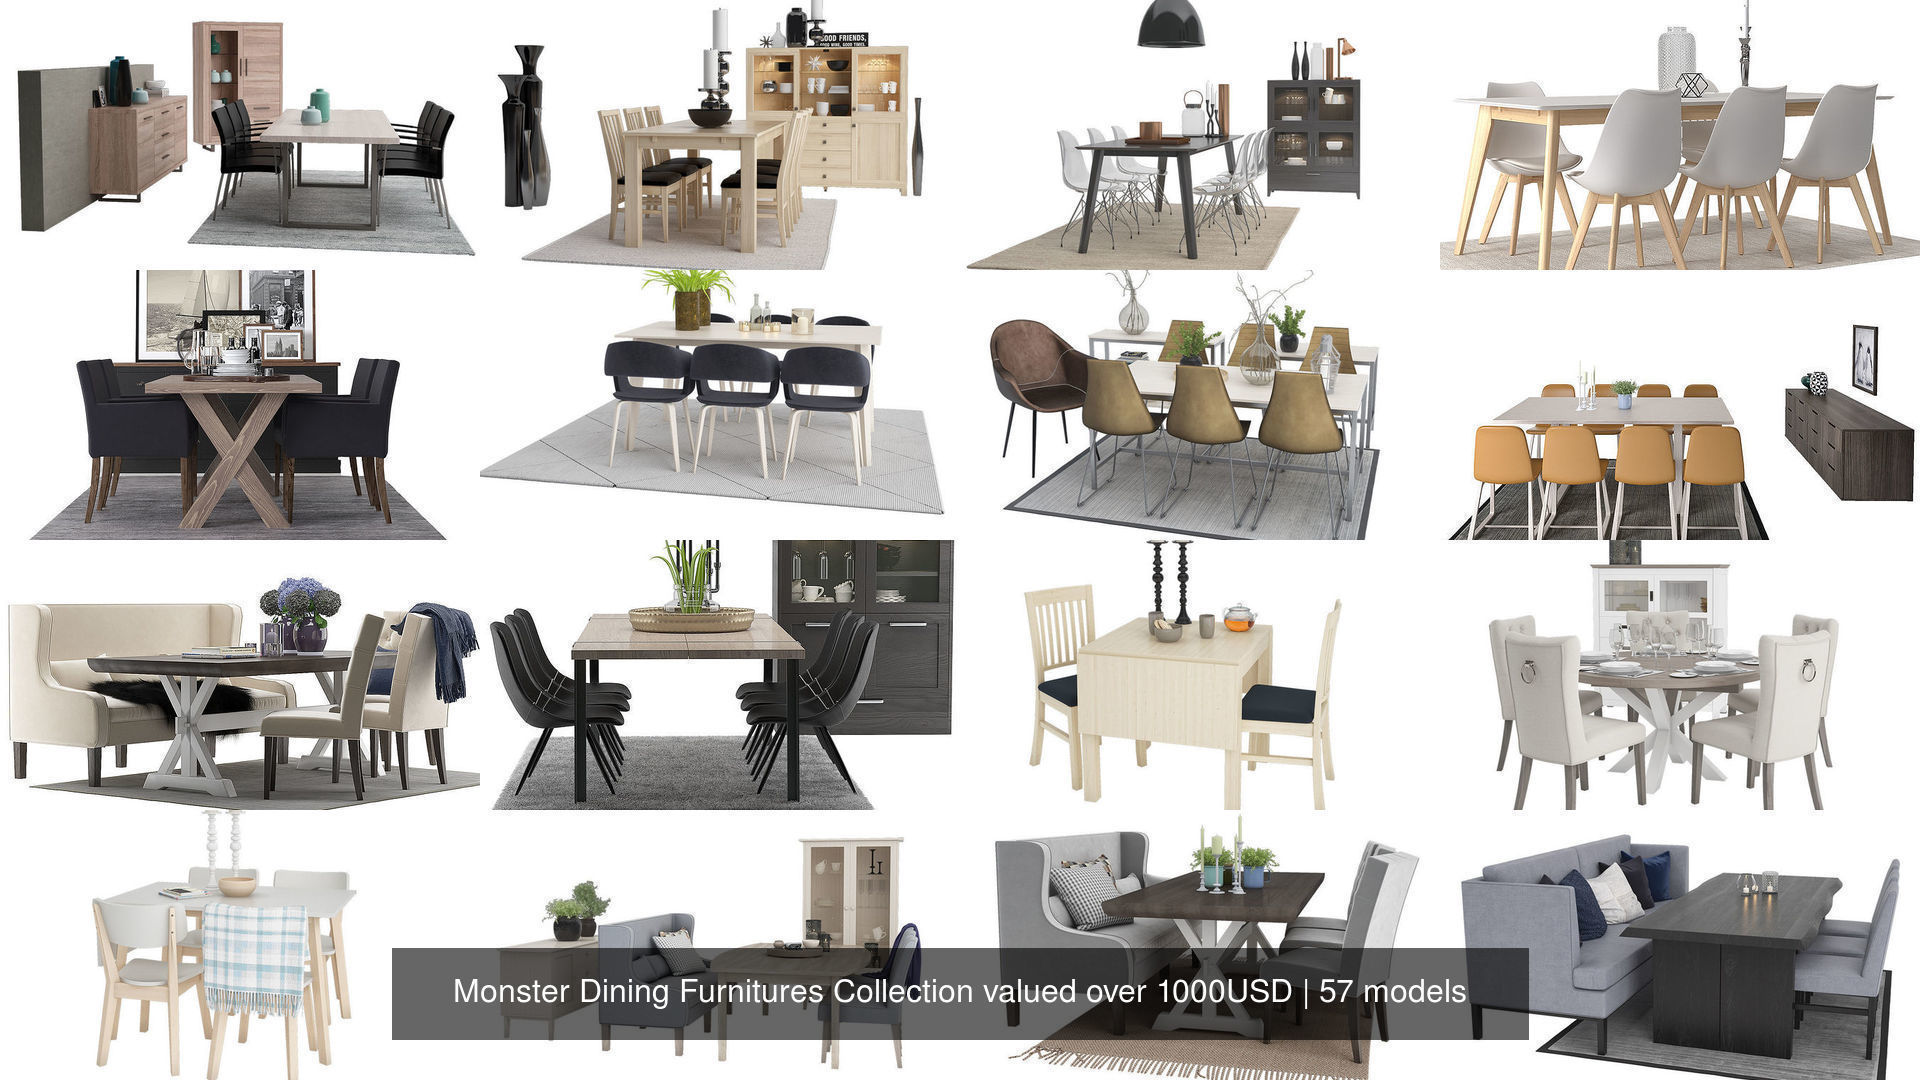 Monster Dining Furnitures Collection valued over 1000USD